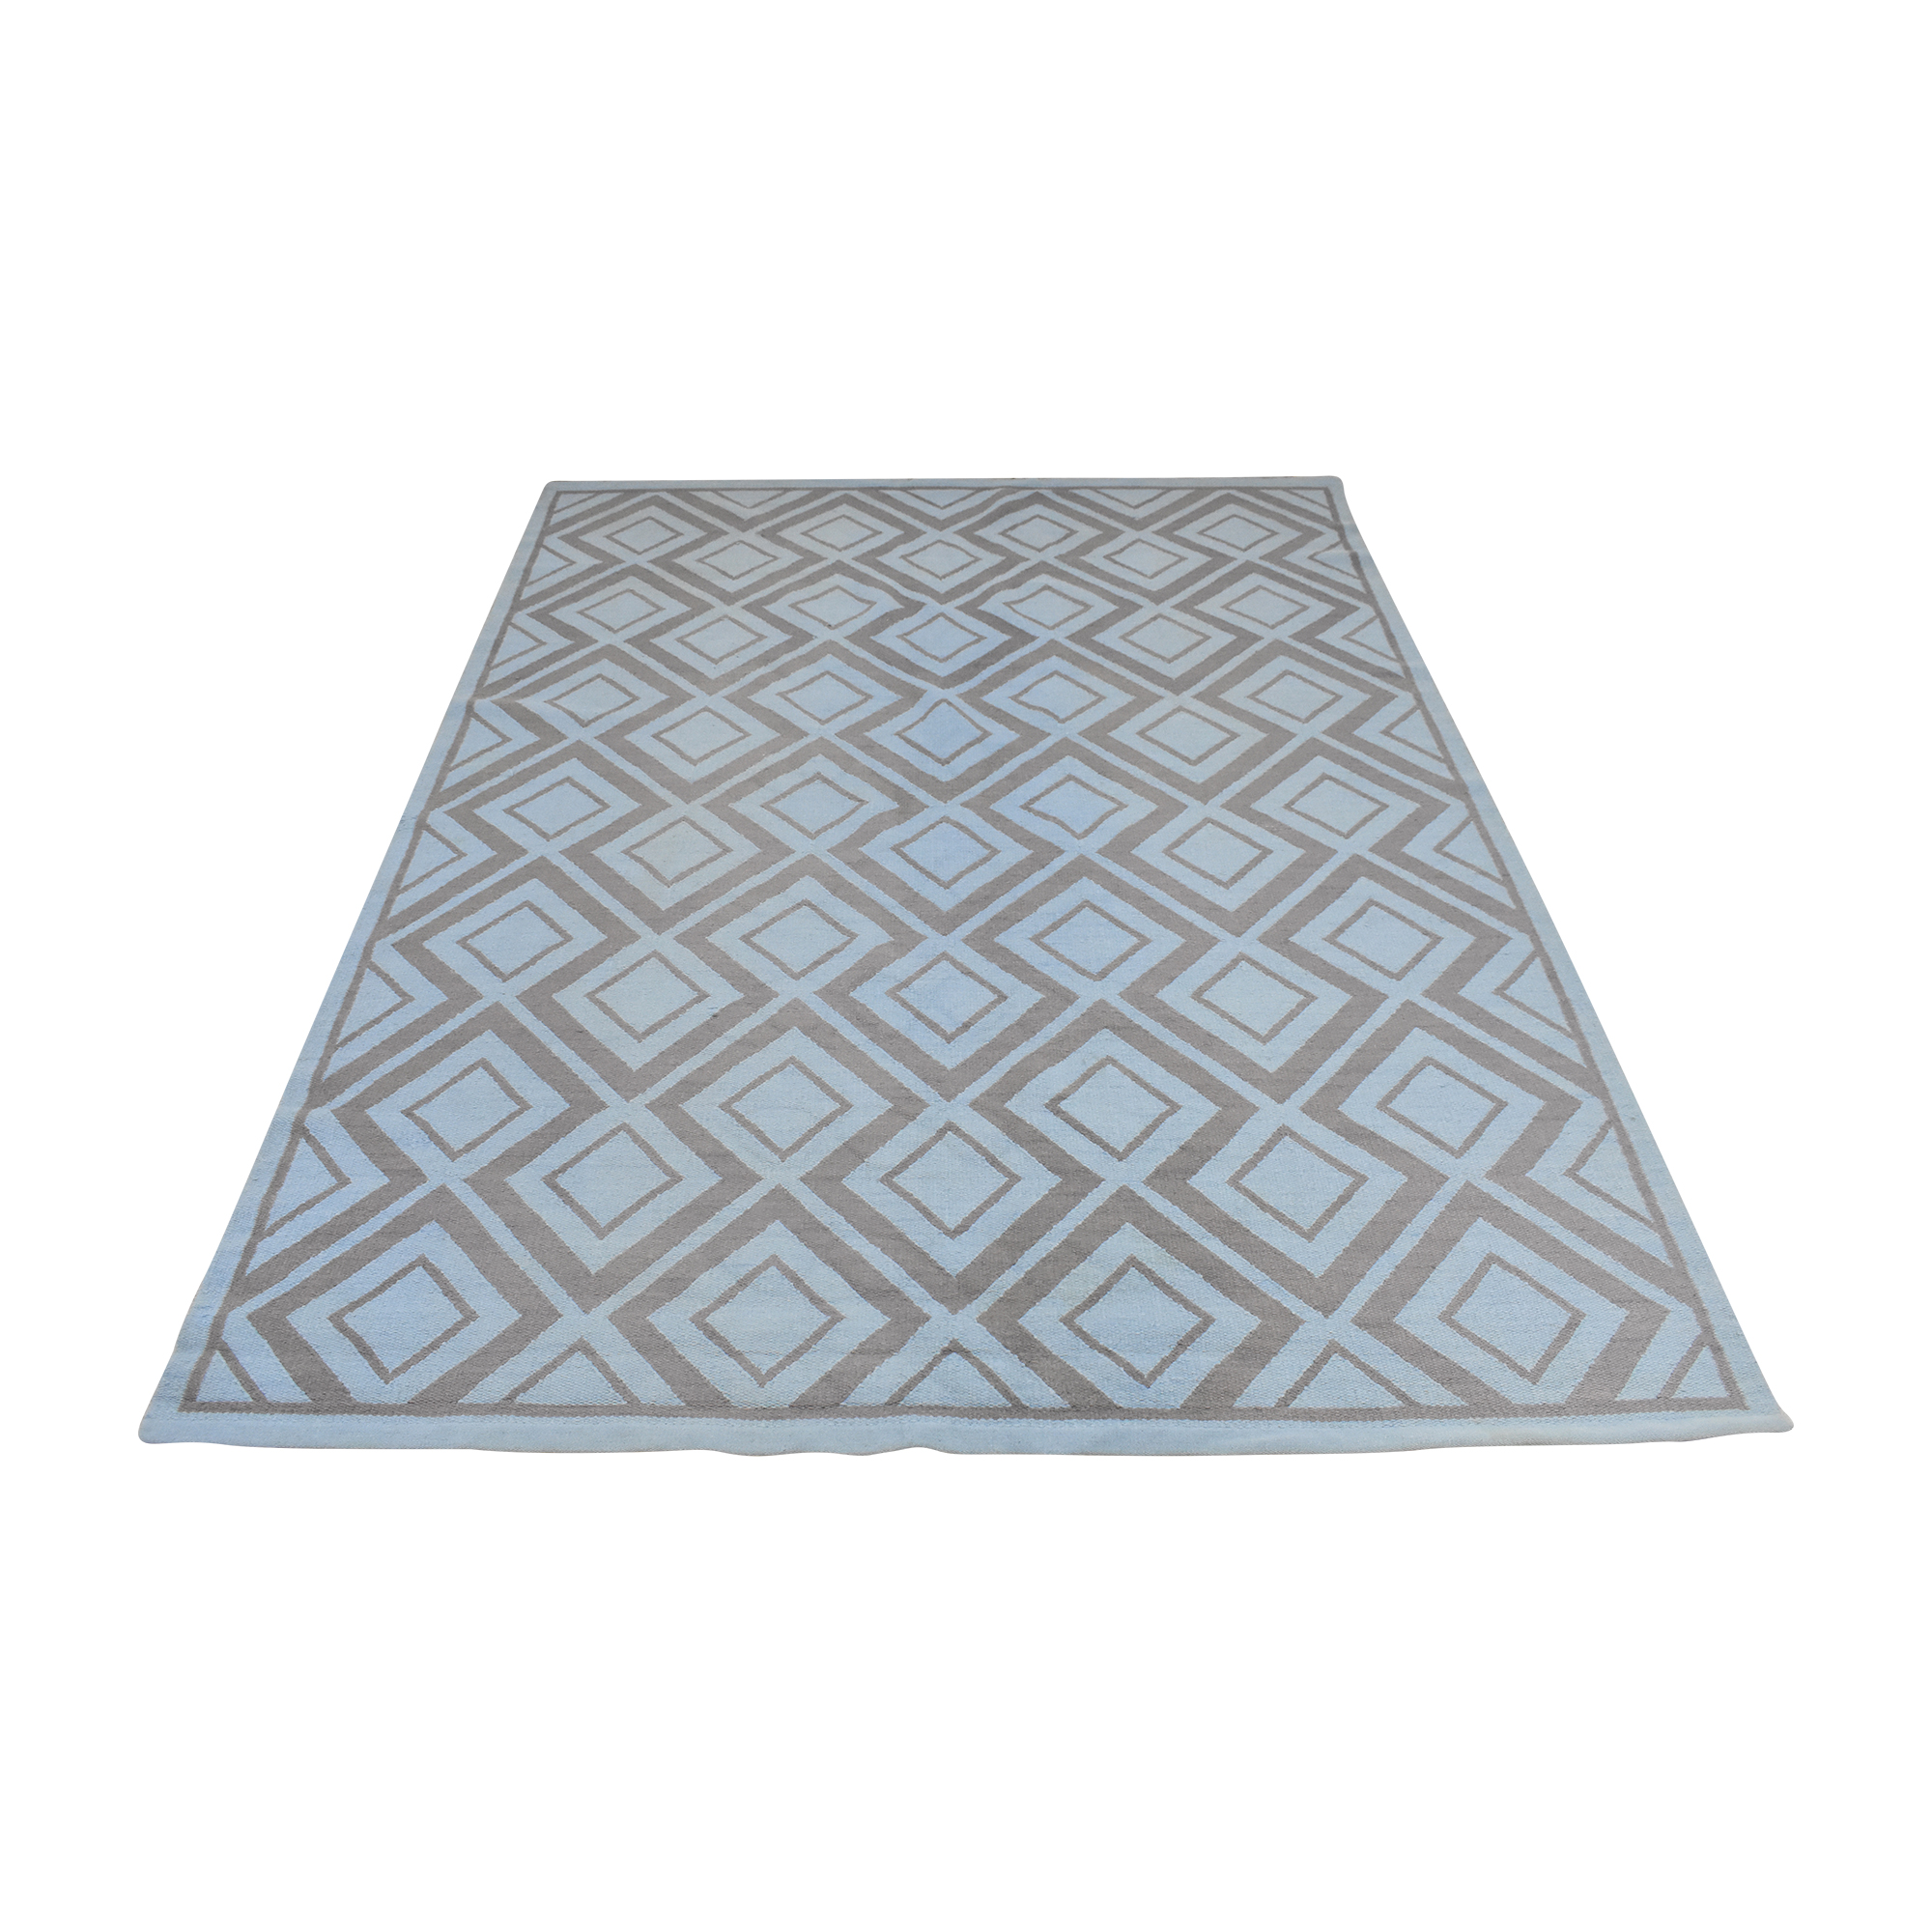 Jonathan Adler Jonathan Adler Patterned Area Rug coupon